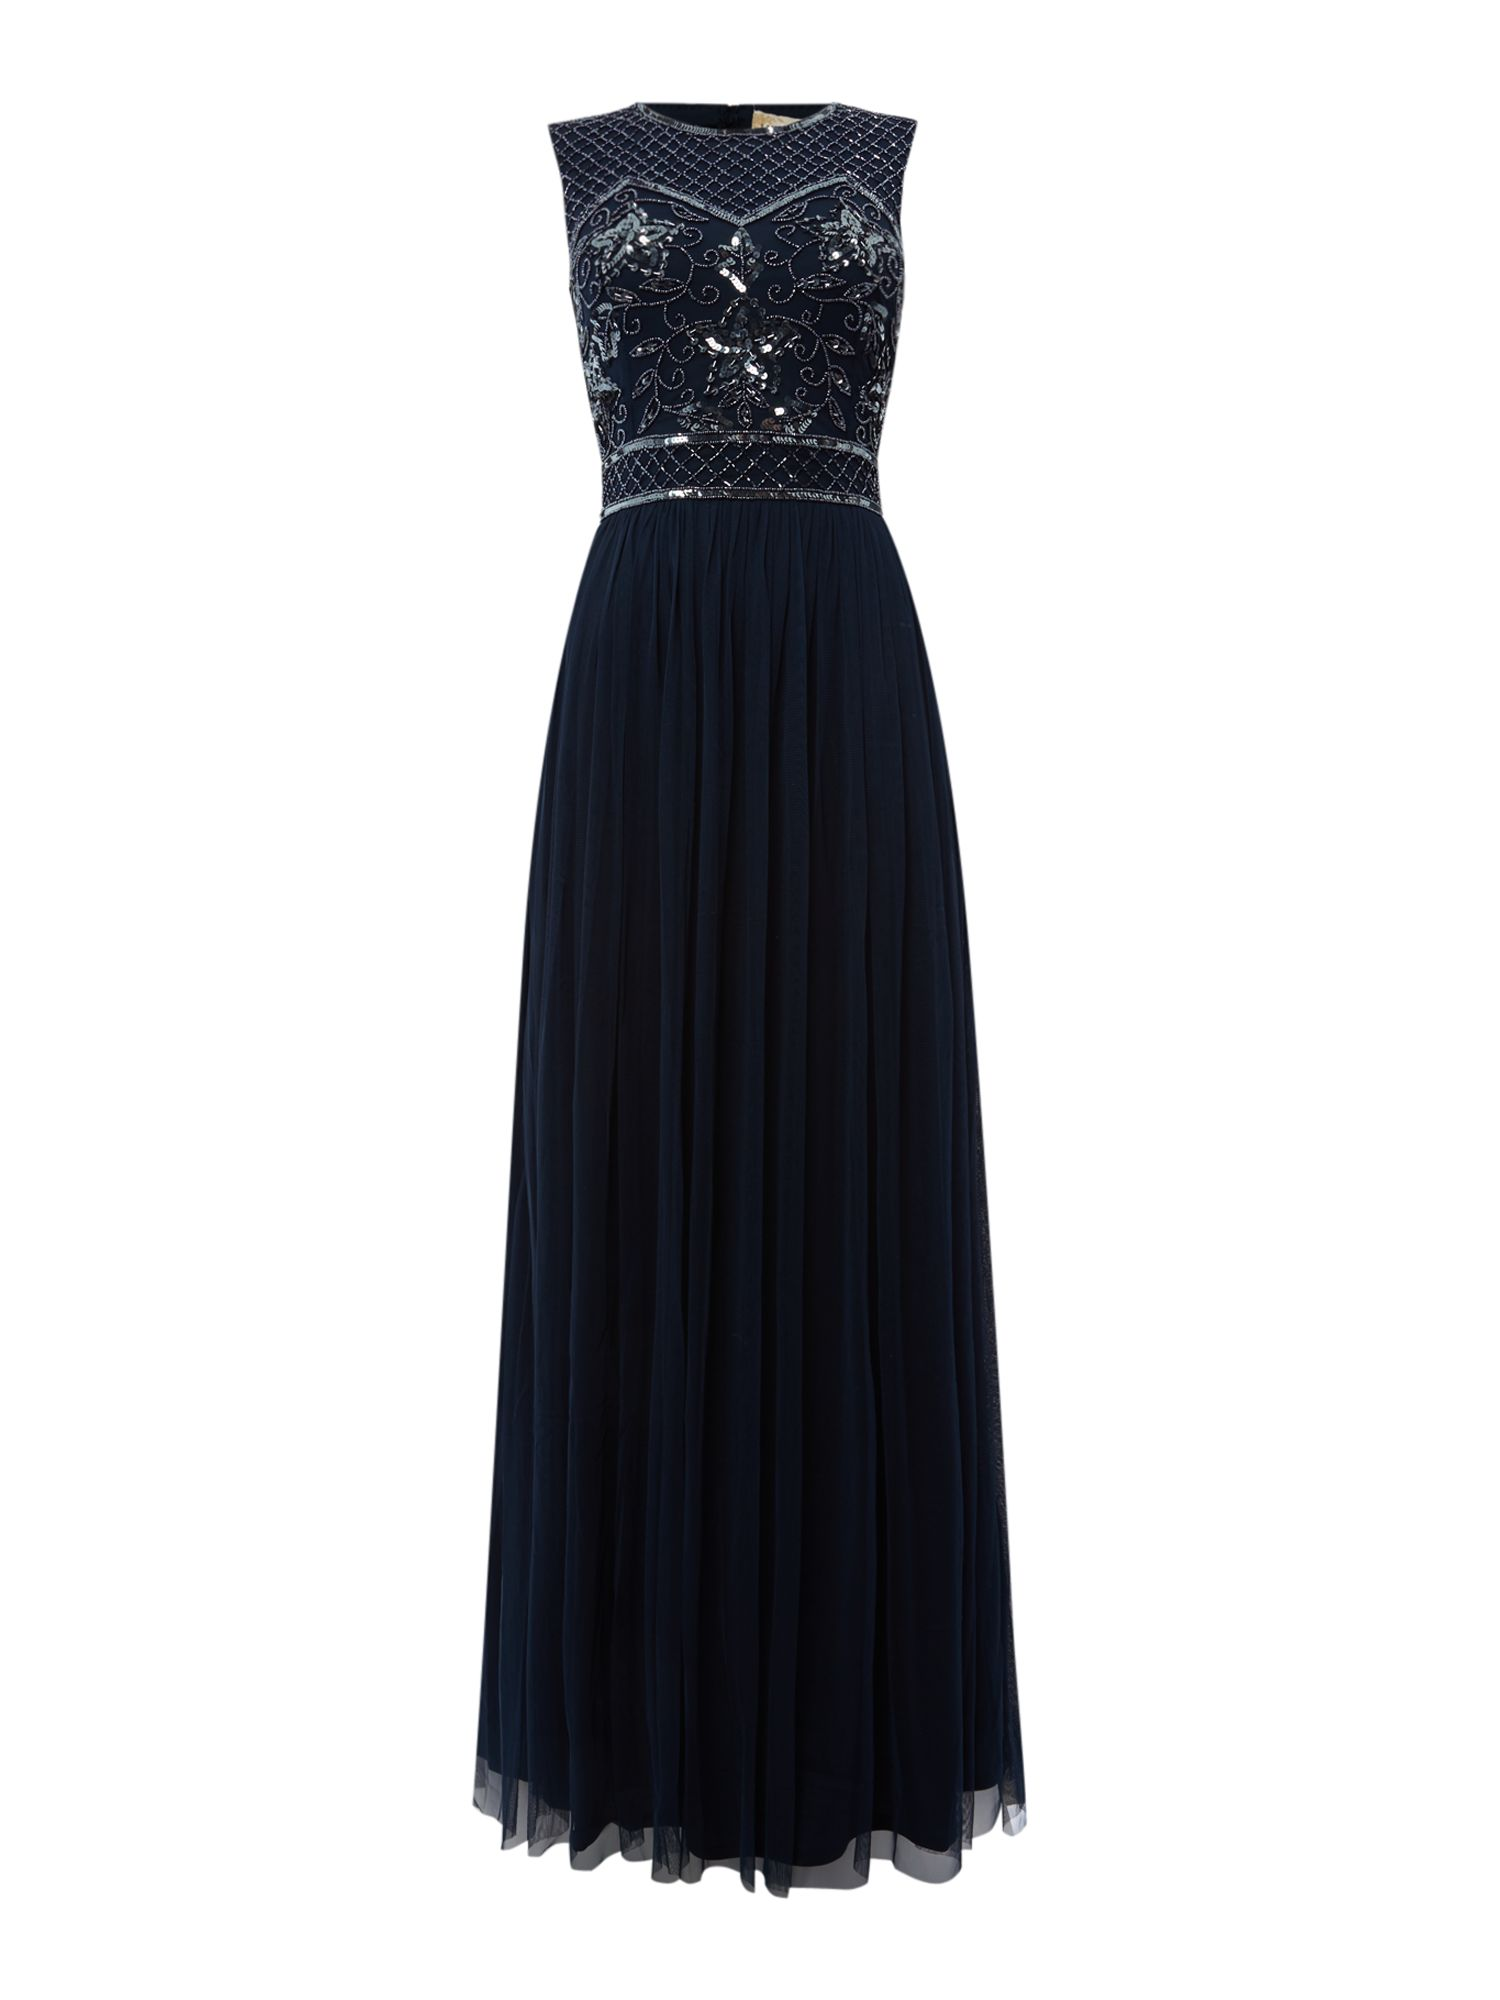 Lace and Beads Open back embellished maxi dress, Blue